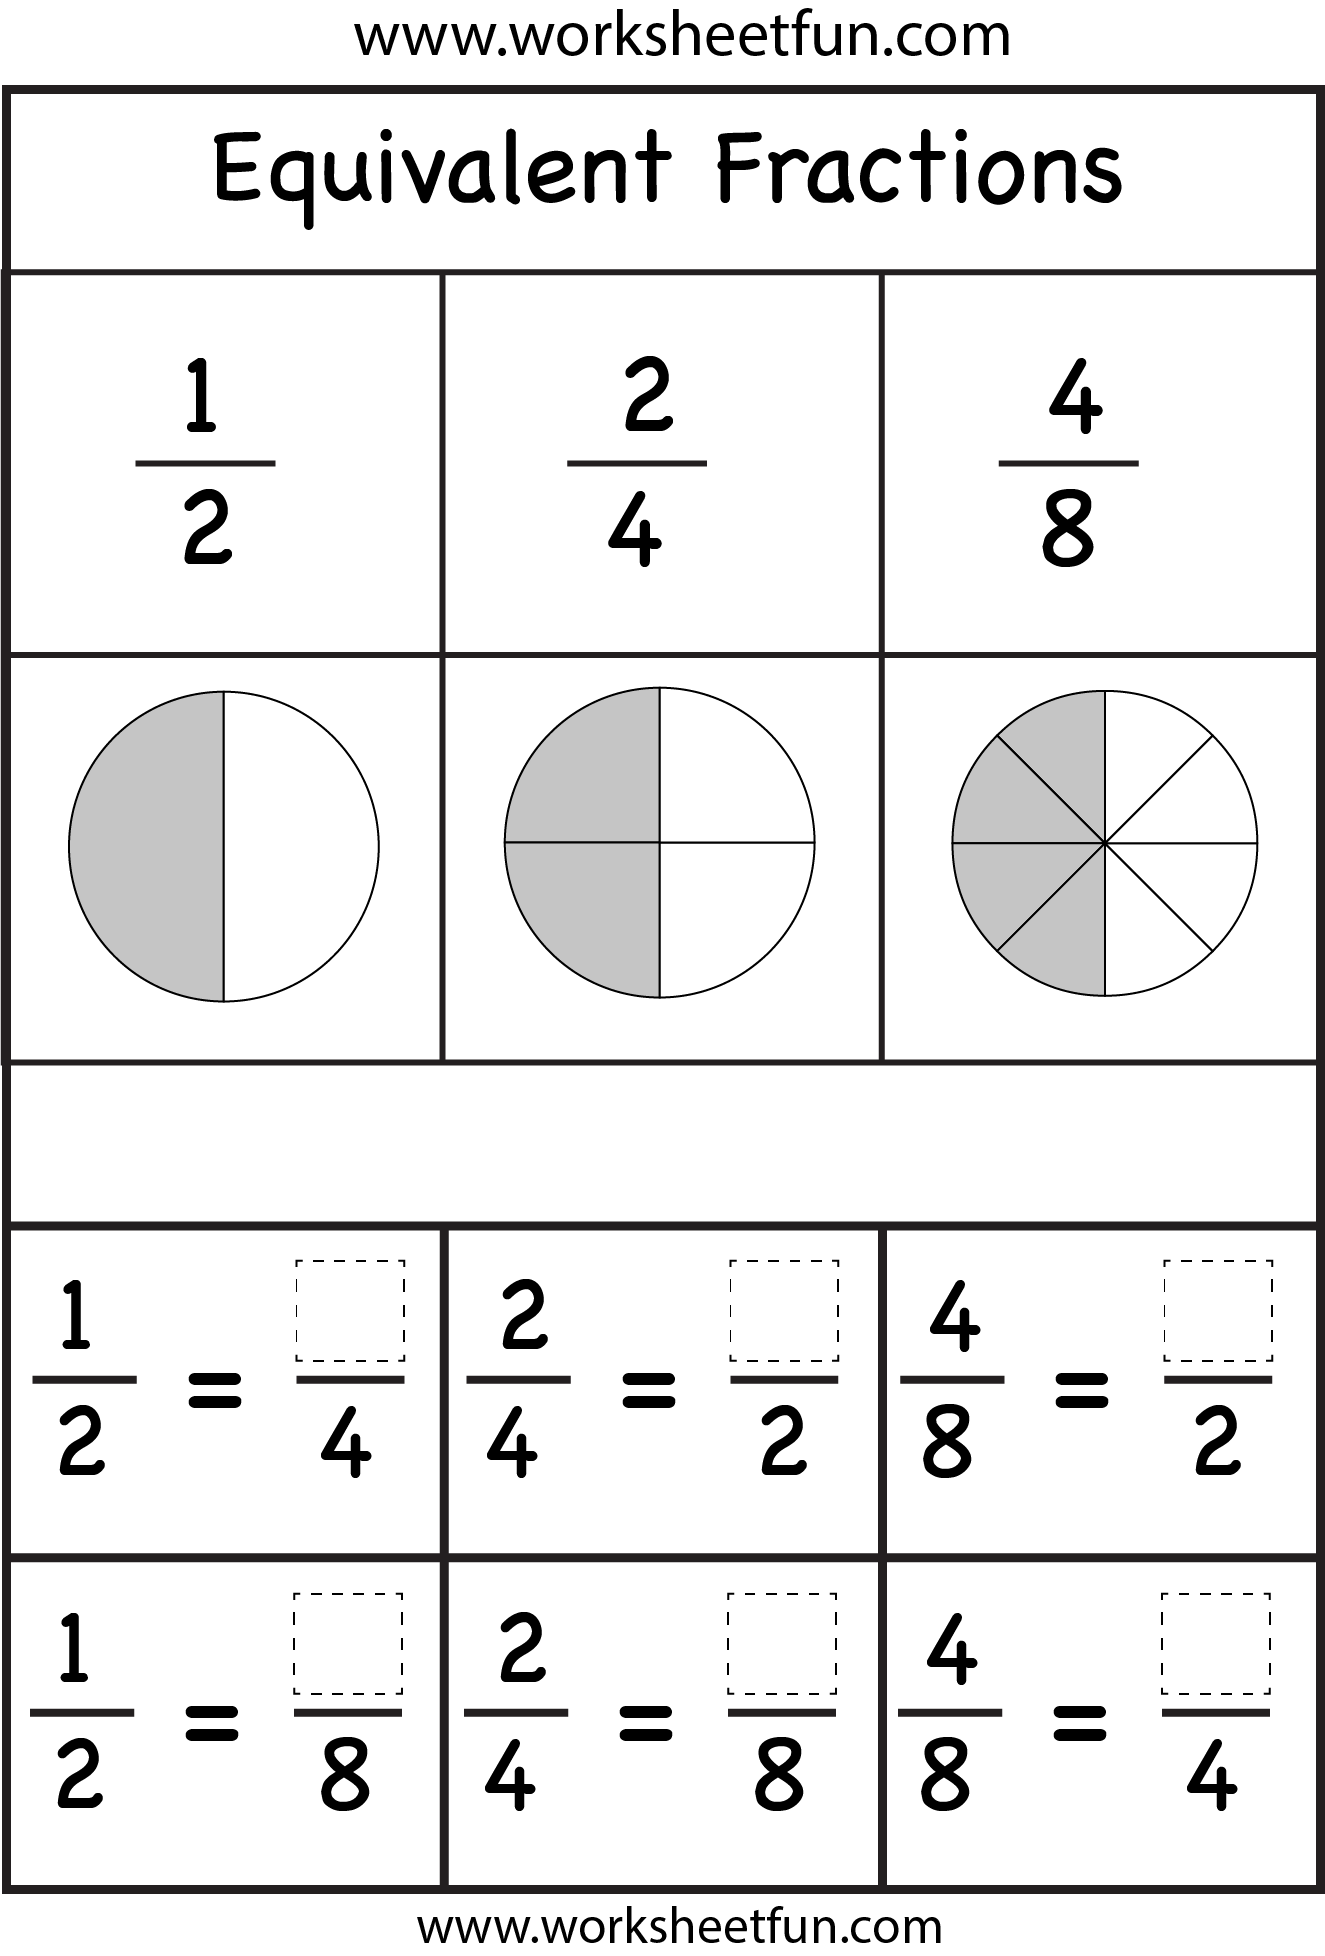 worksheet Equivalent Fractions Worksheet 3rd Grade equivalent fractions 2 worksheets homeschoolmath pinterest worksheets